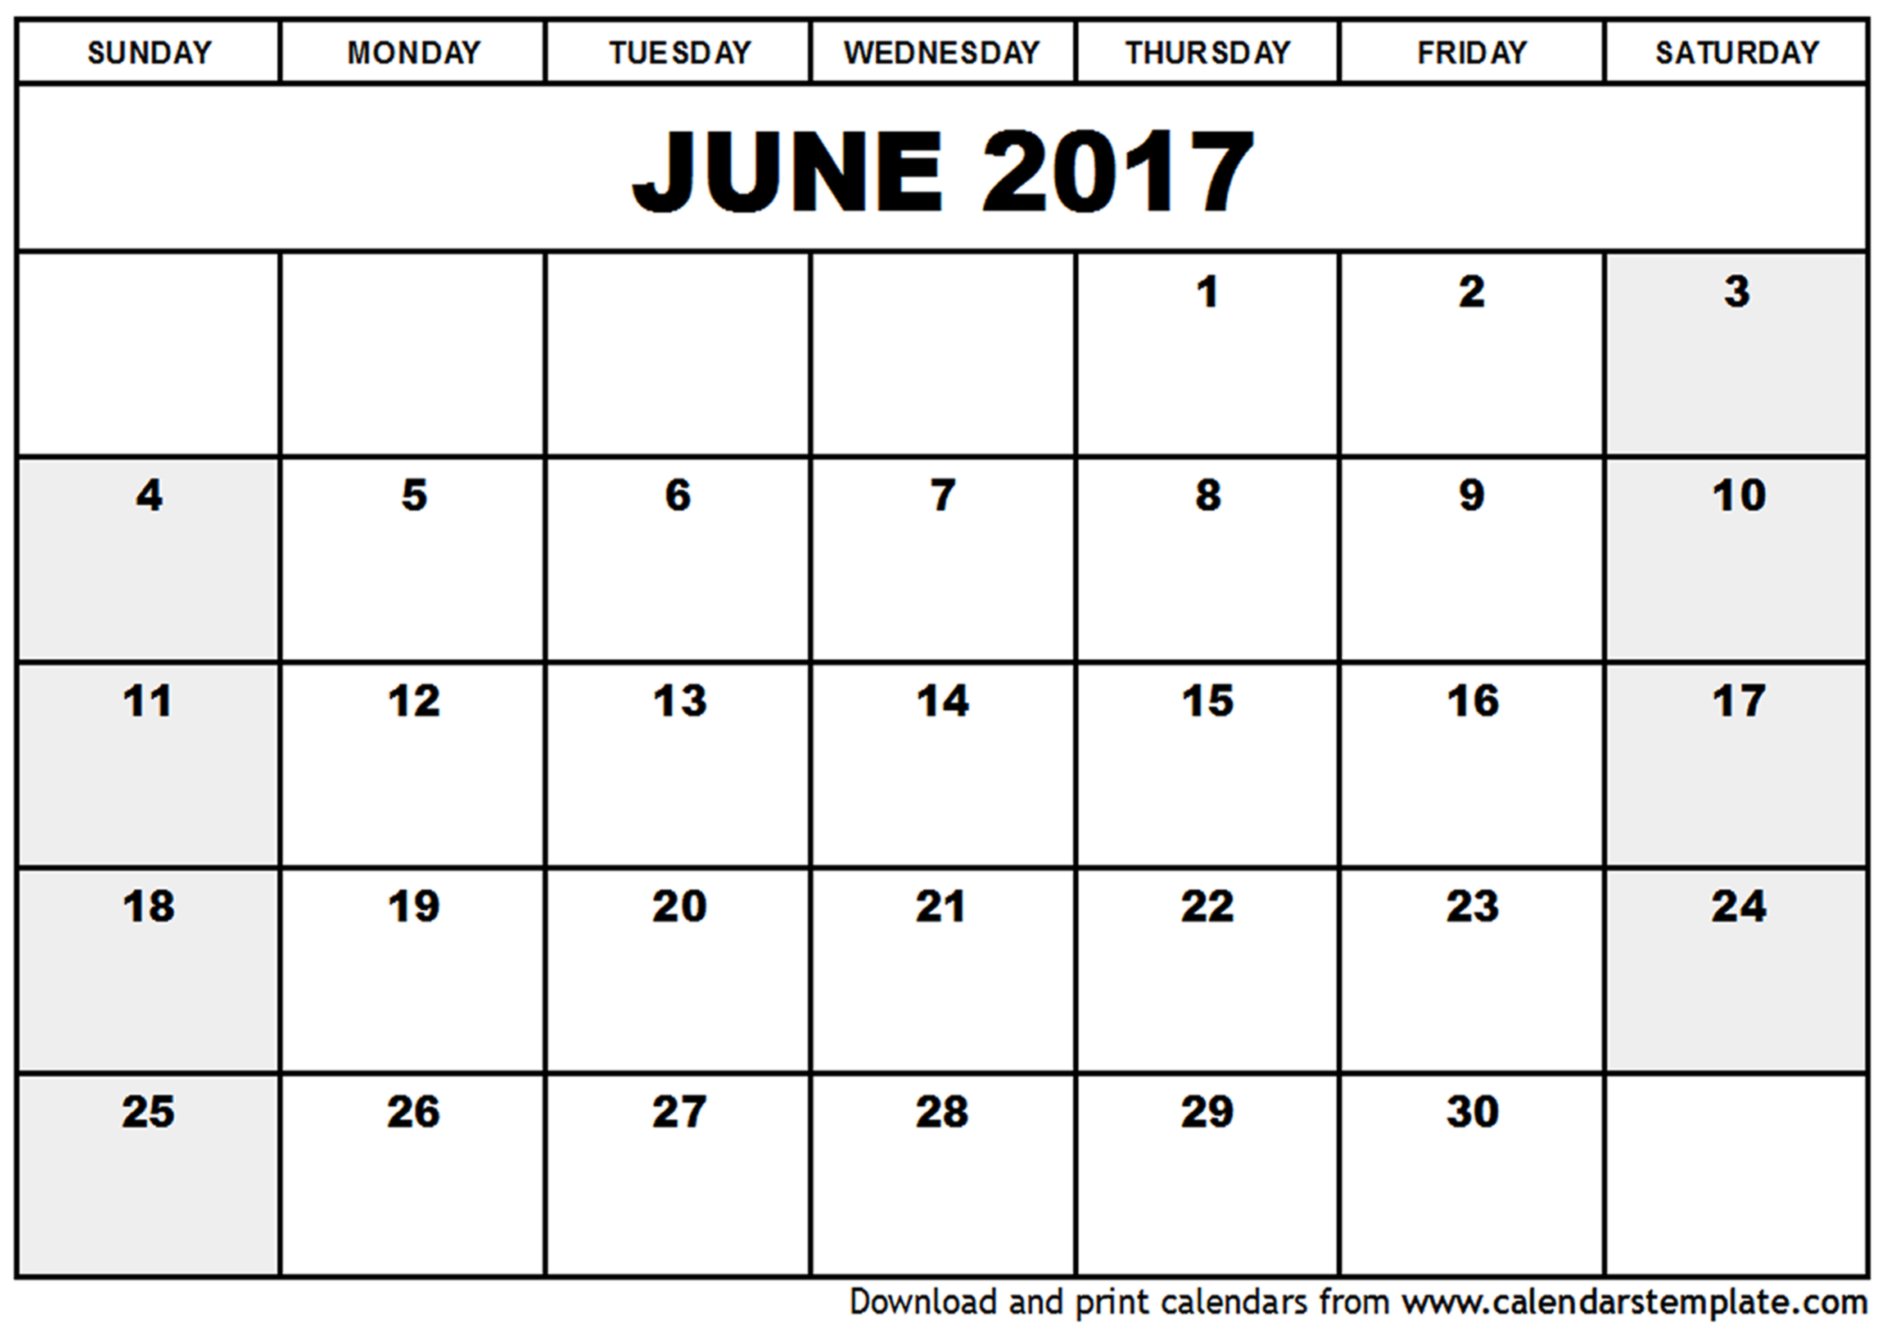 printable june 2017 calendar – Calendar light